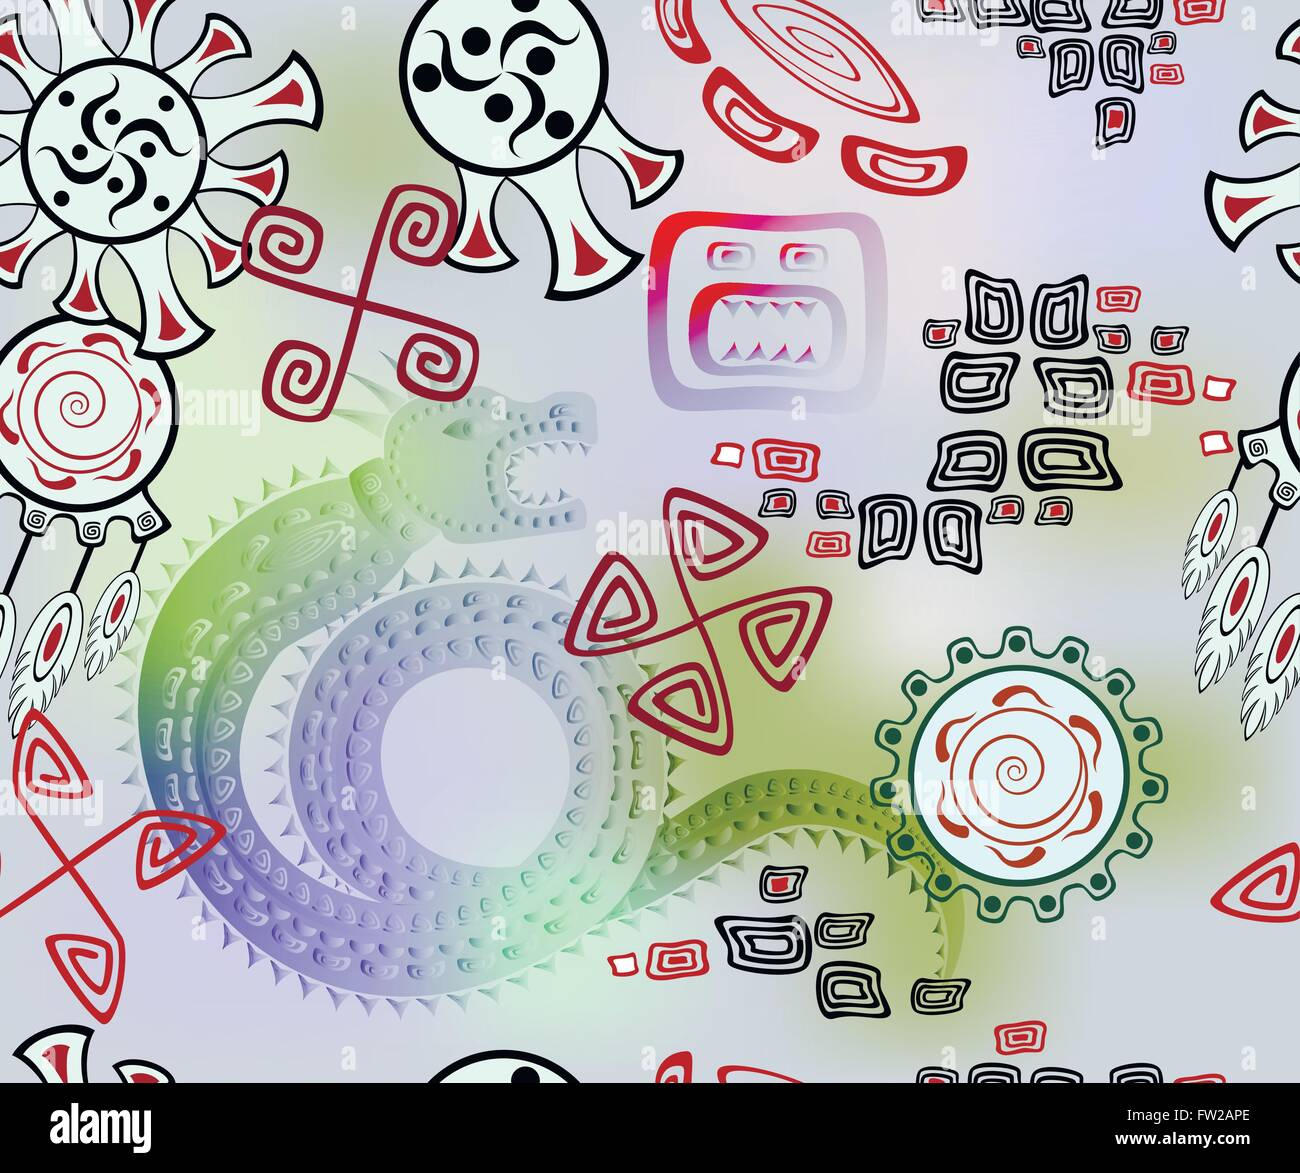 Vector Mayan Inca Tribal Symbols Stock Photos Vector Mayan Inca